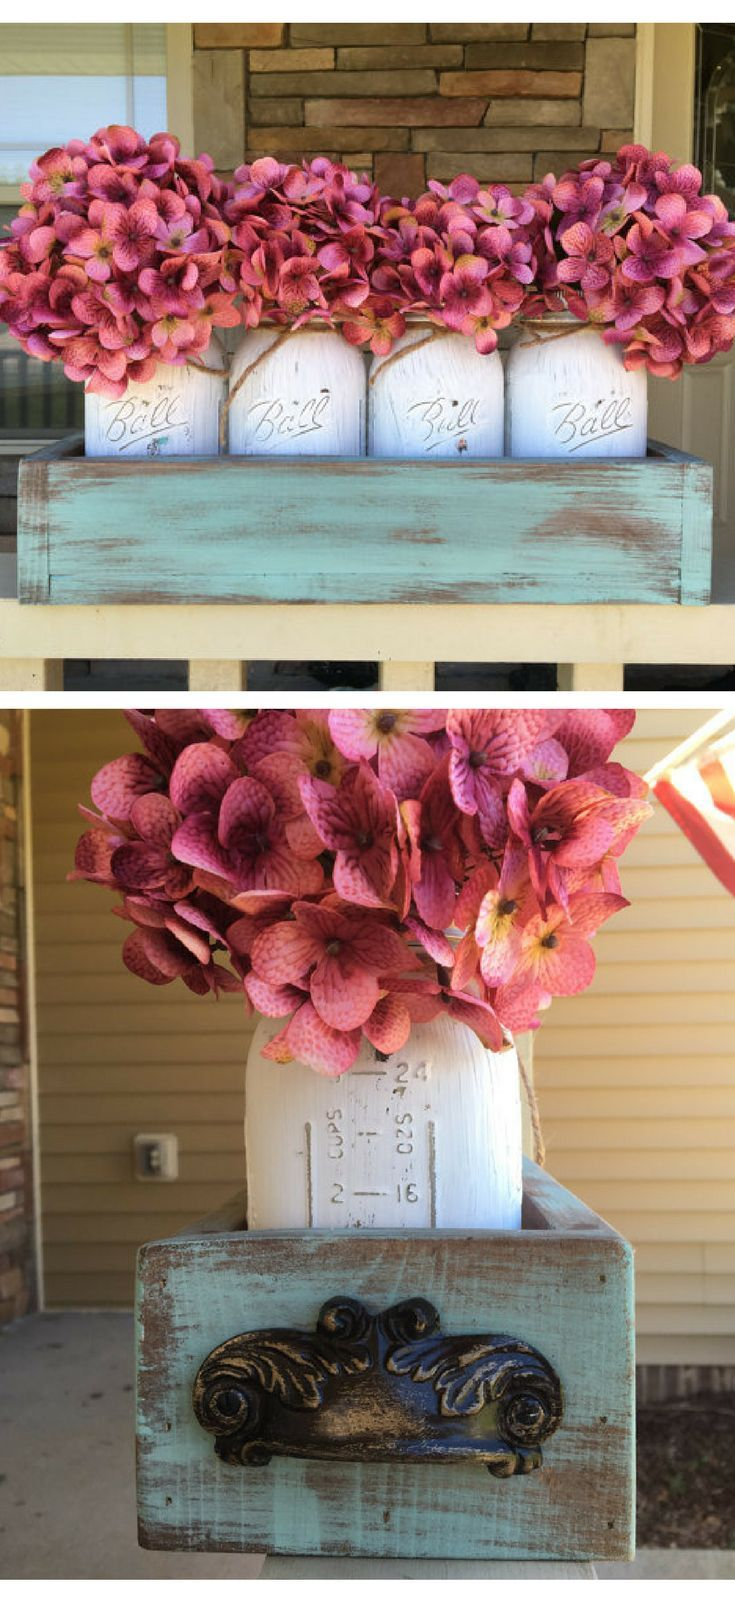 Mason Jar Centerpiece In Teal Rustic Planter Box! Teal Planter Box, White  Mason Jar, Pink Flower Set. Summer Time Centerpiece, Rustic Living, Country  Living ...